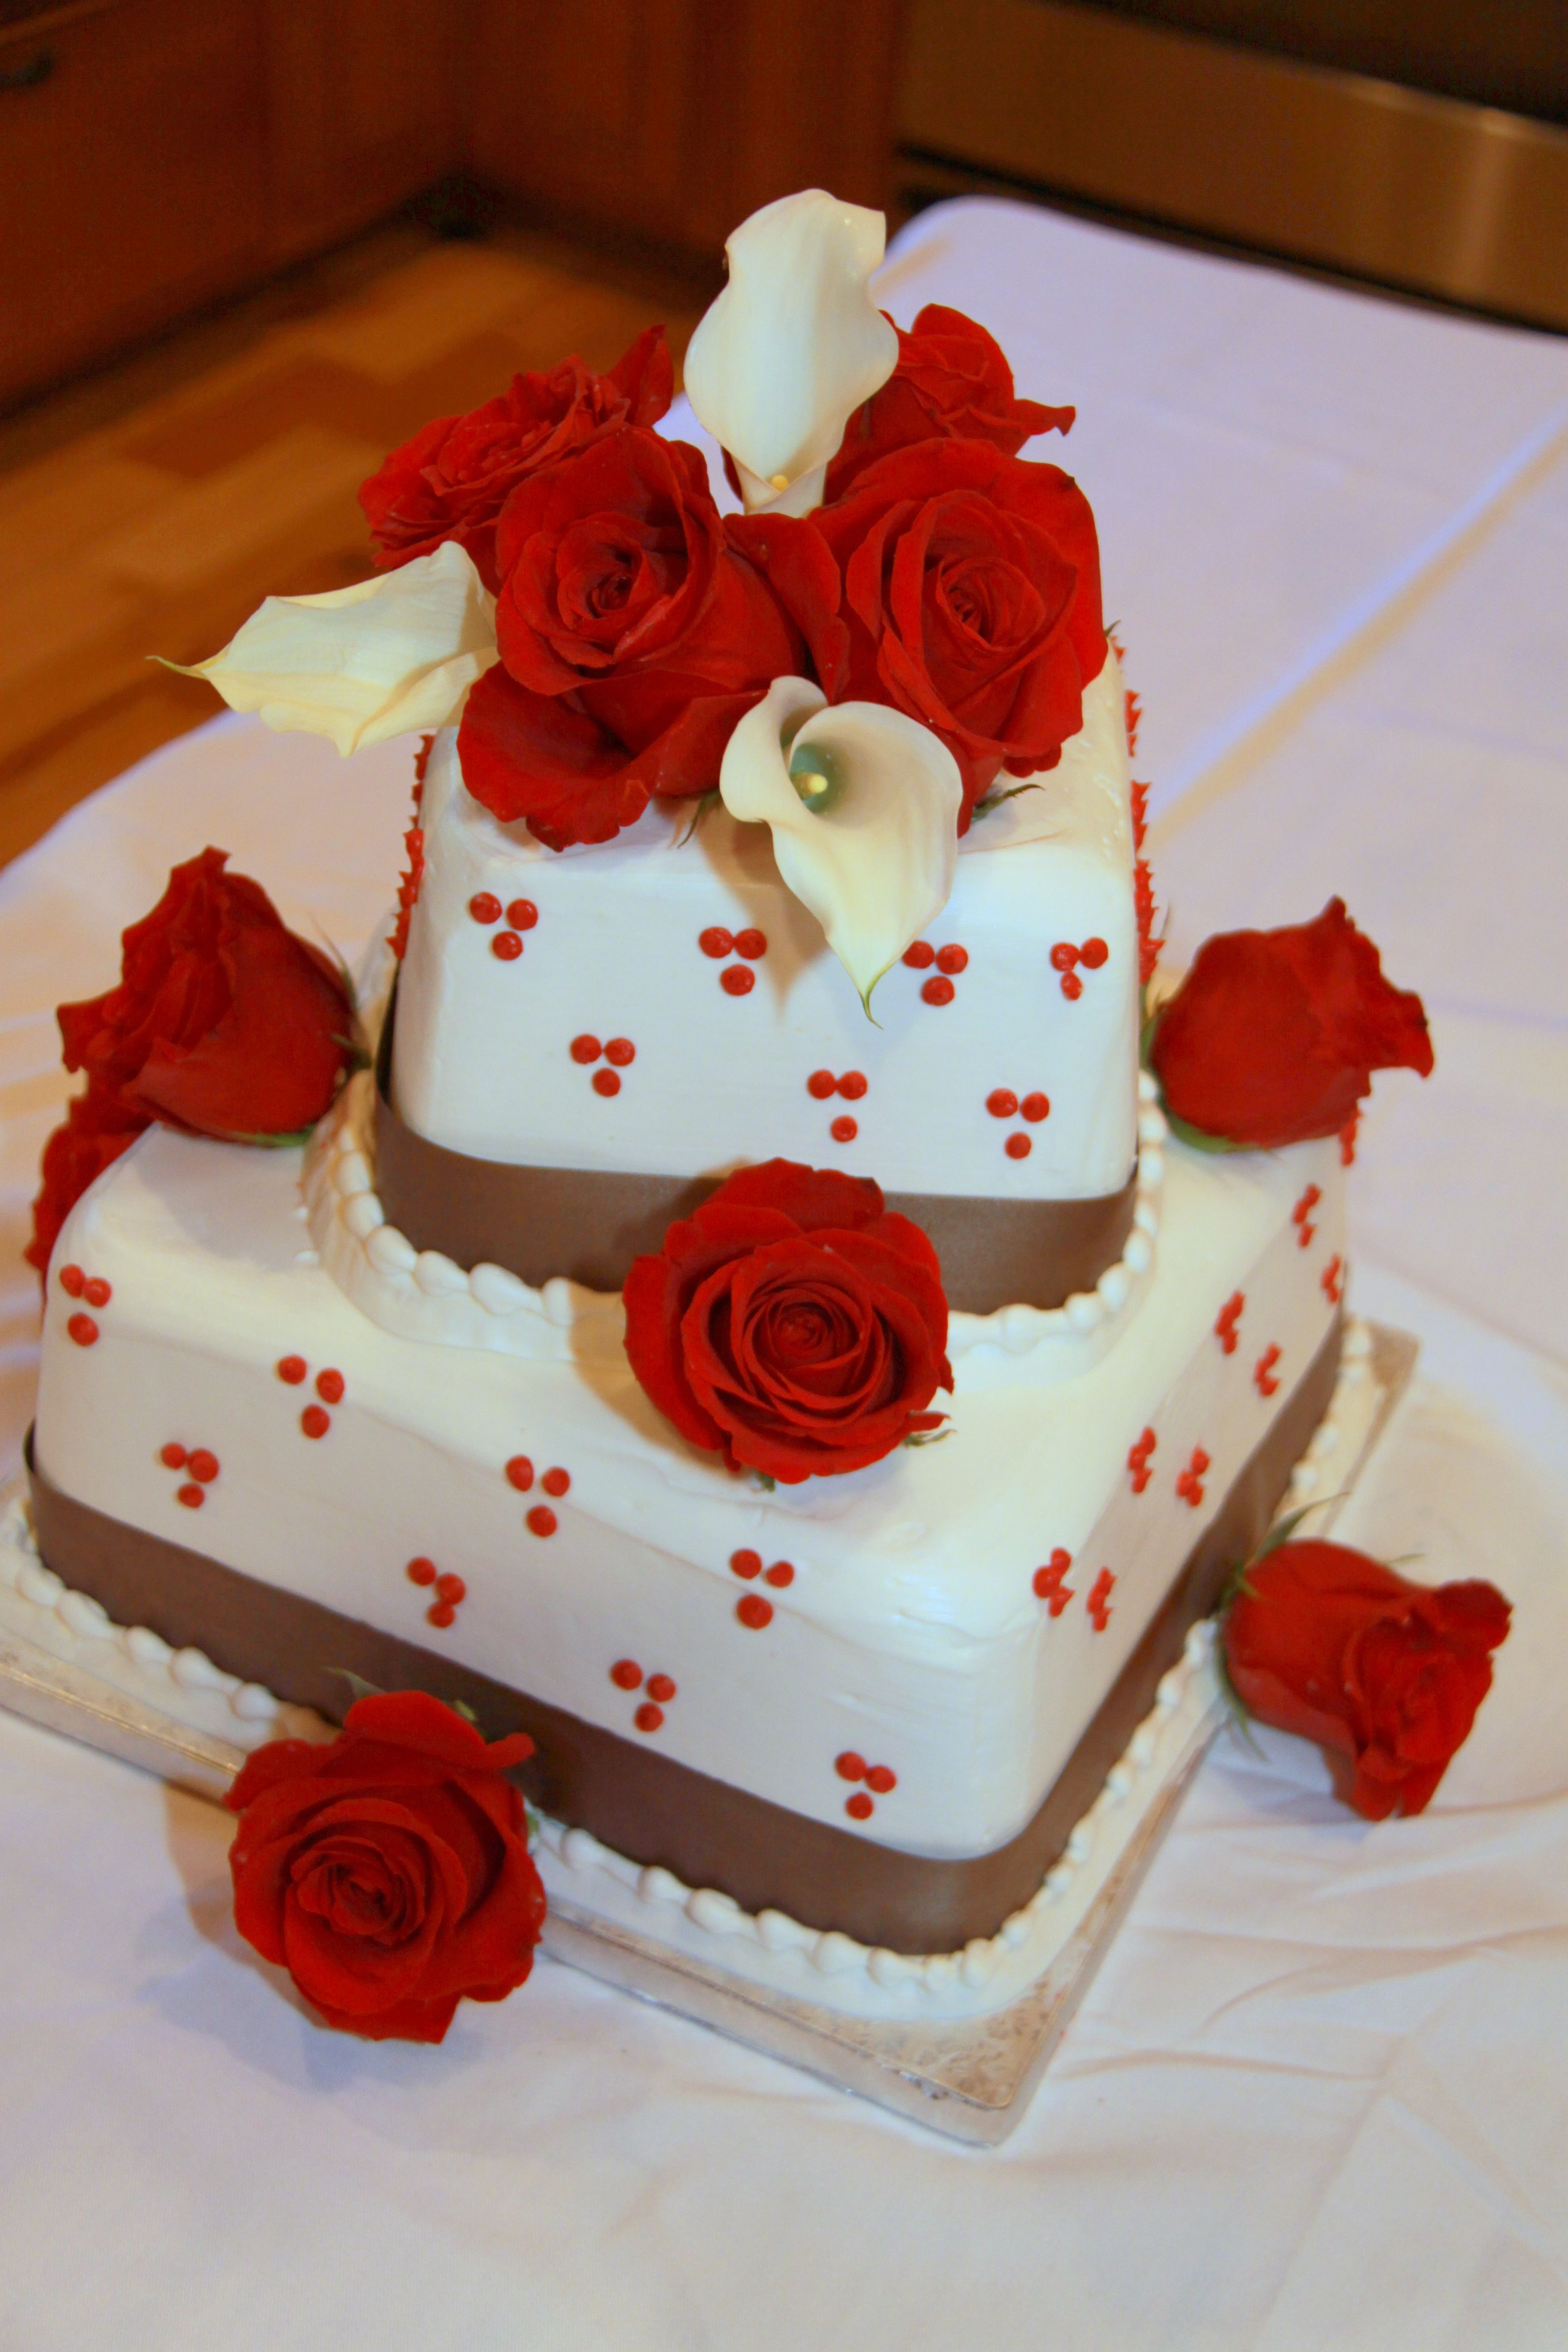 square, smooth iced wedding cake with fresh red roses